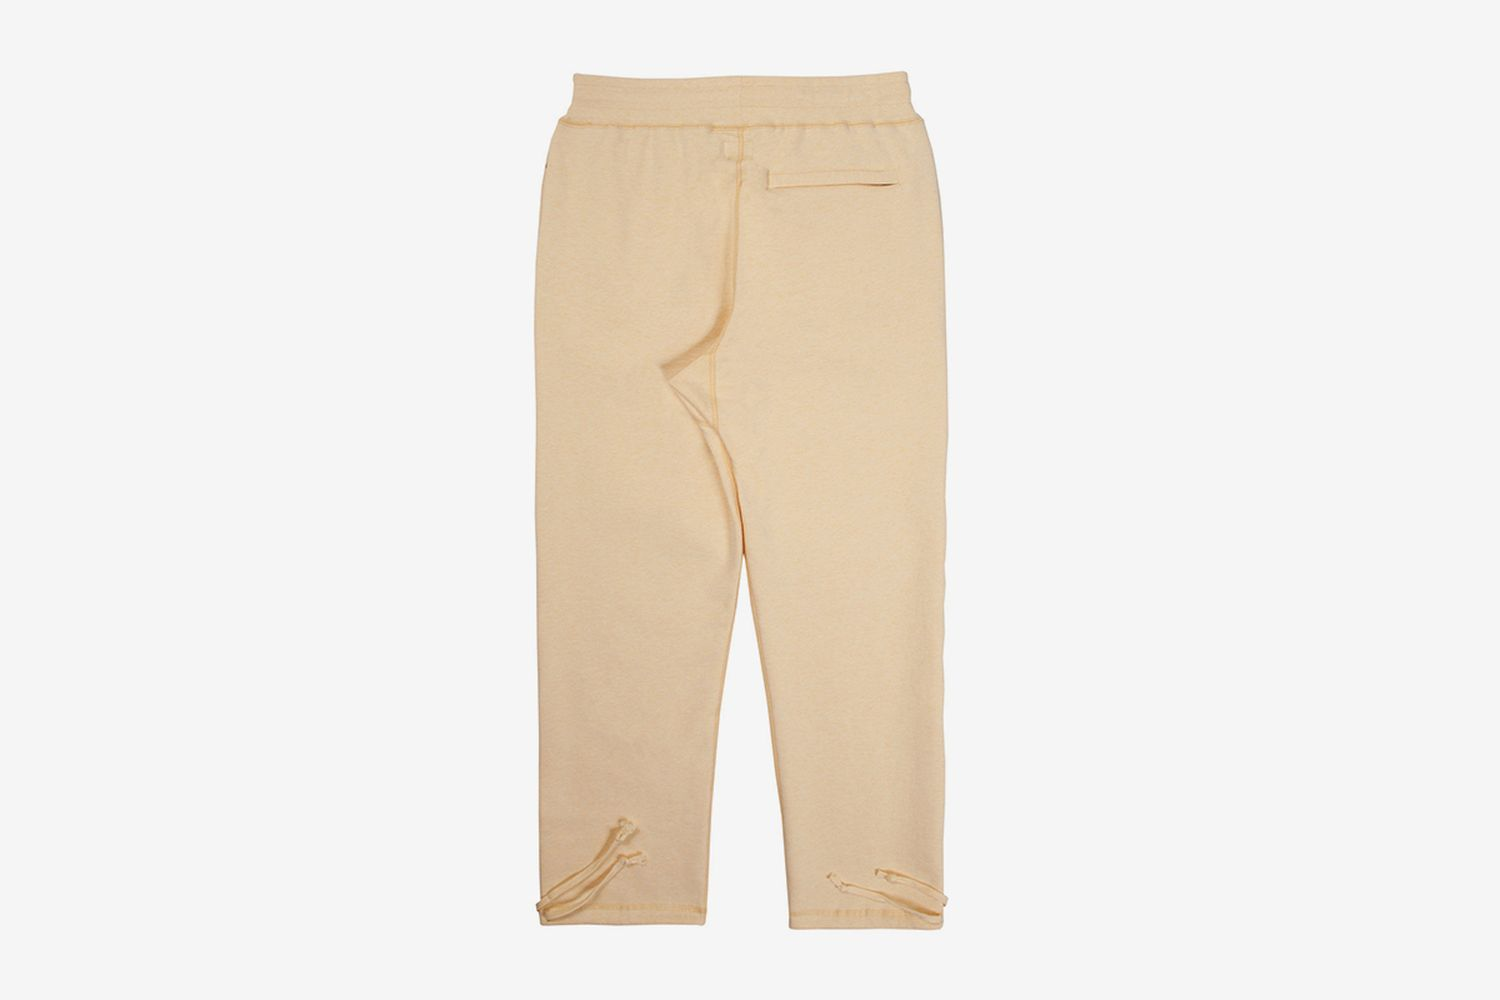 Winged Foot Sweatpant